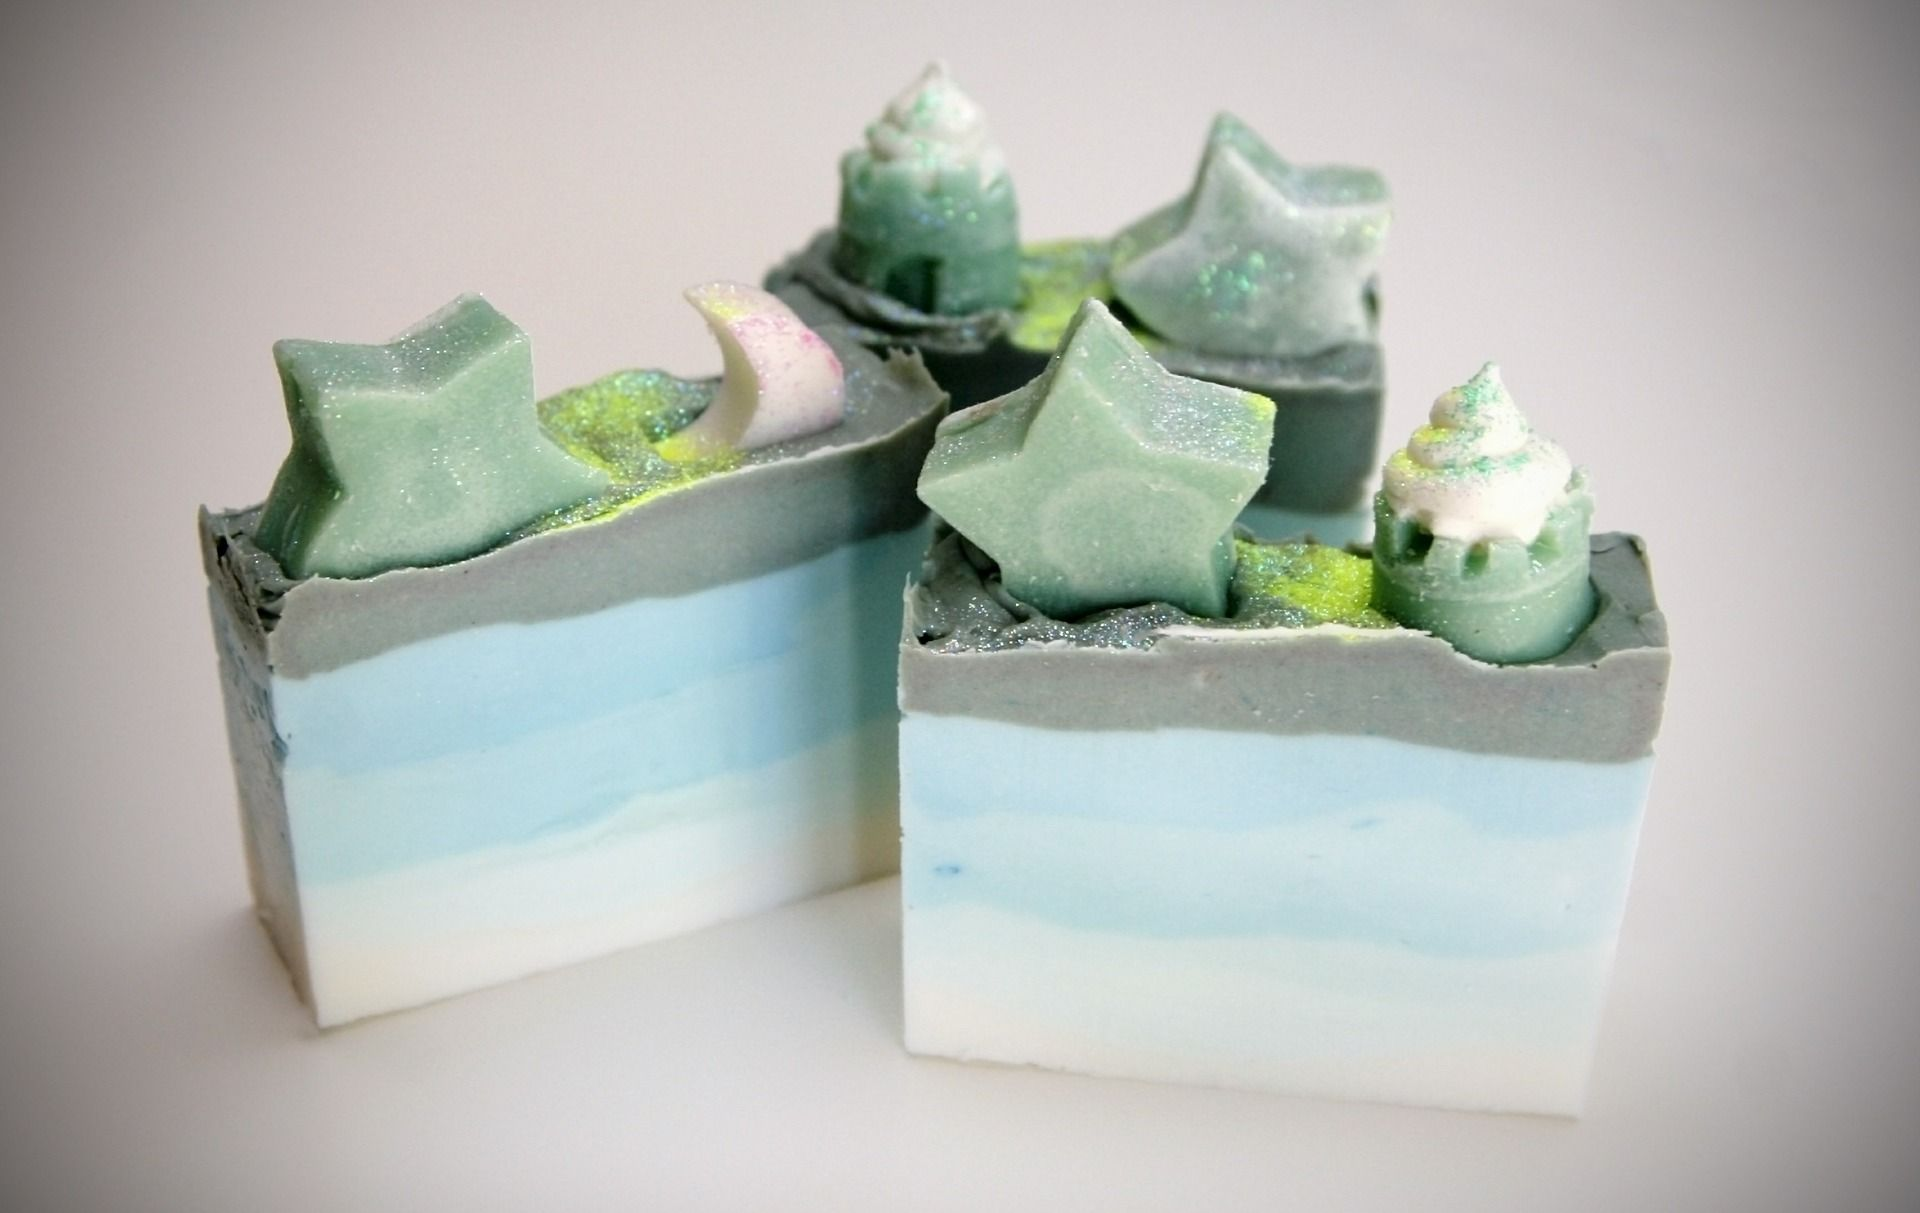 Soap Making TIps for Beginners